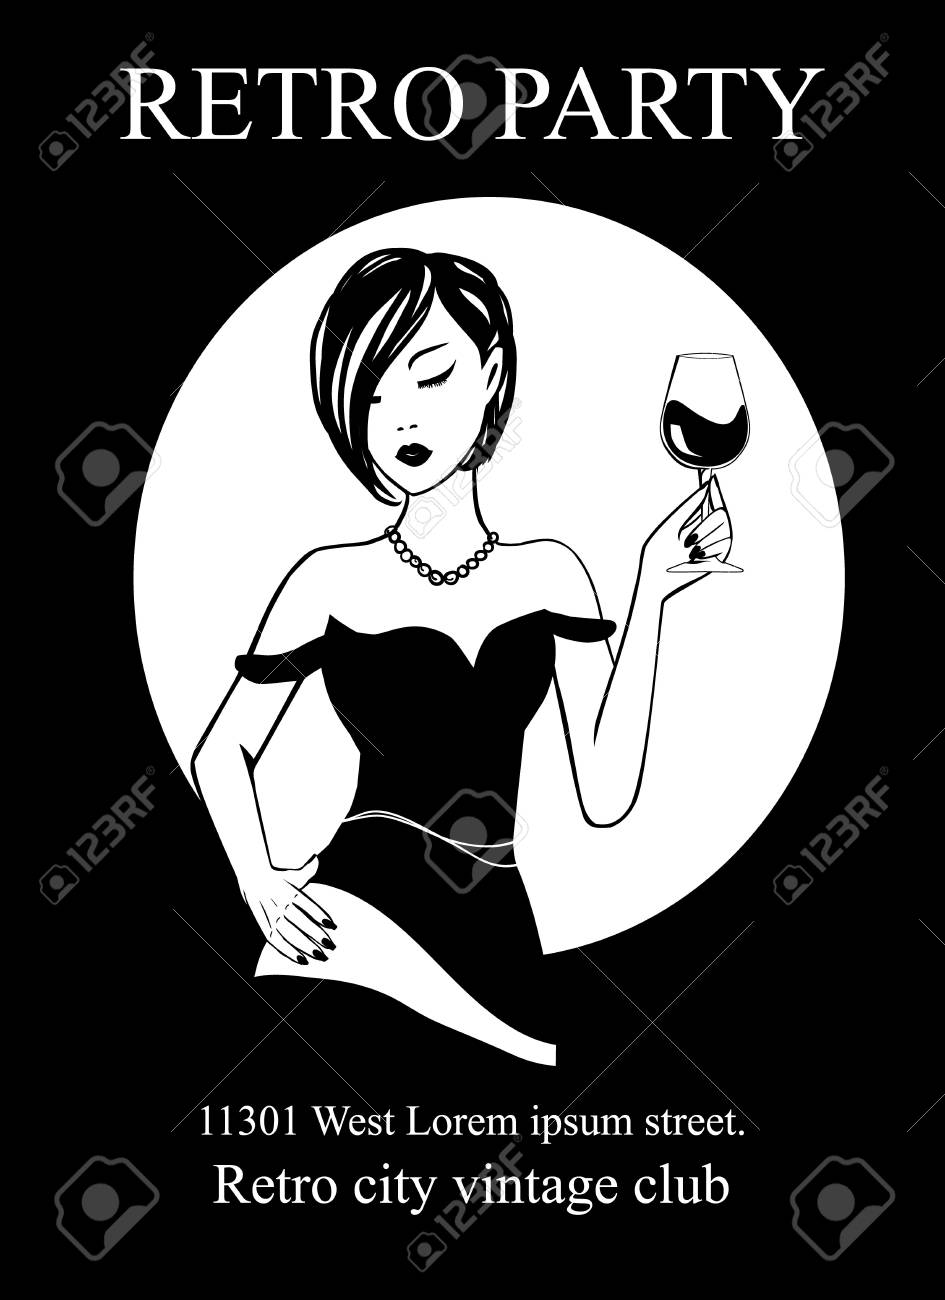 Poster Art Deco Retro Party 20th century style - ink silhouette girl in pearl necklace with wine glass. Invitation card on National wine day - Handmade drawing illustration Vintage minimalist style. - 101294723